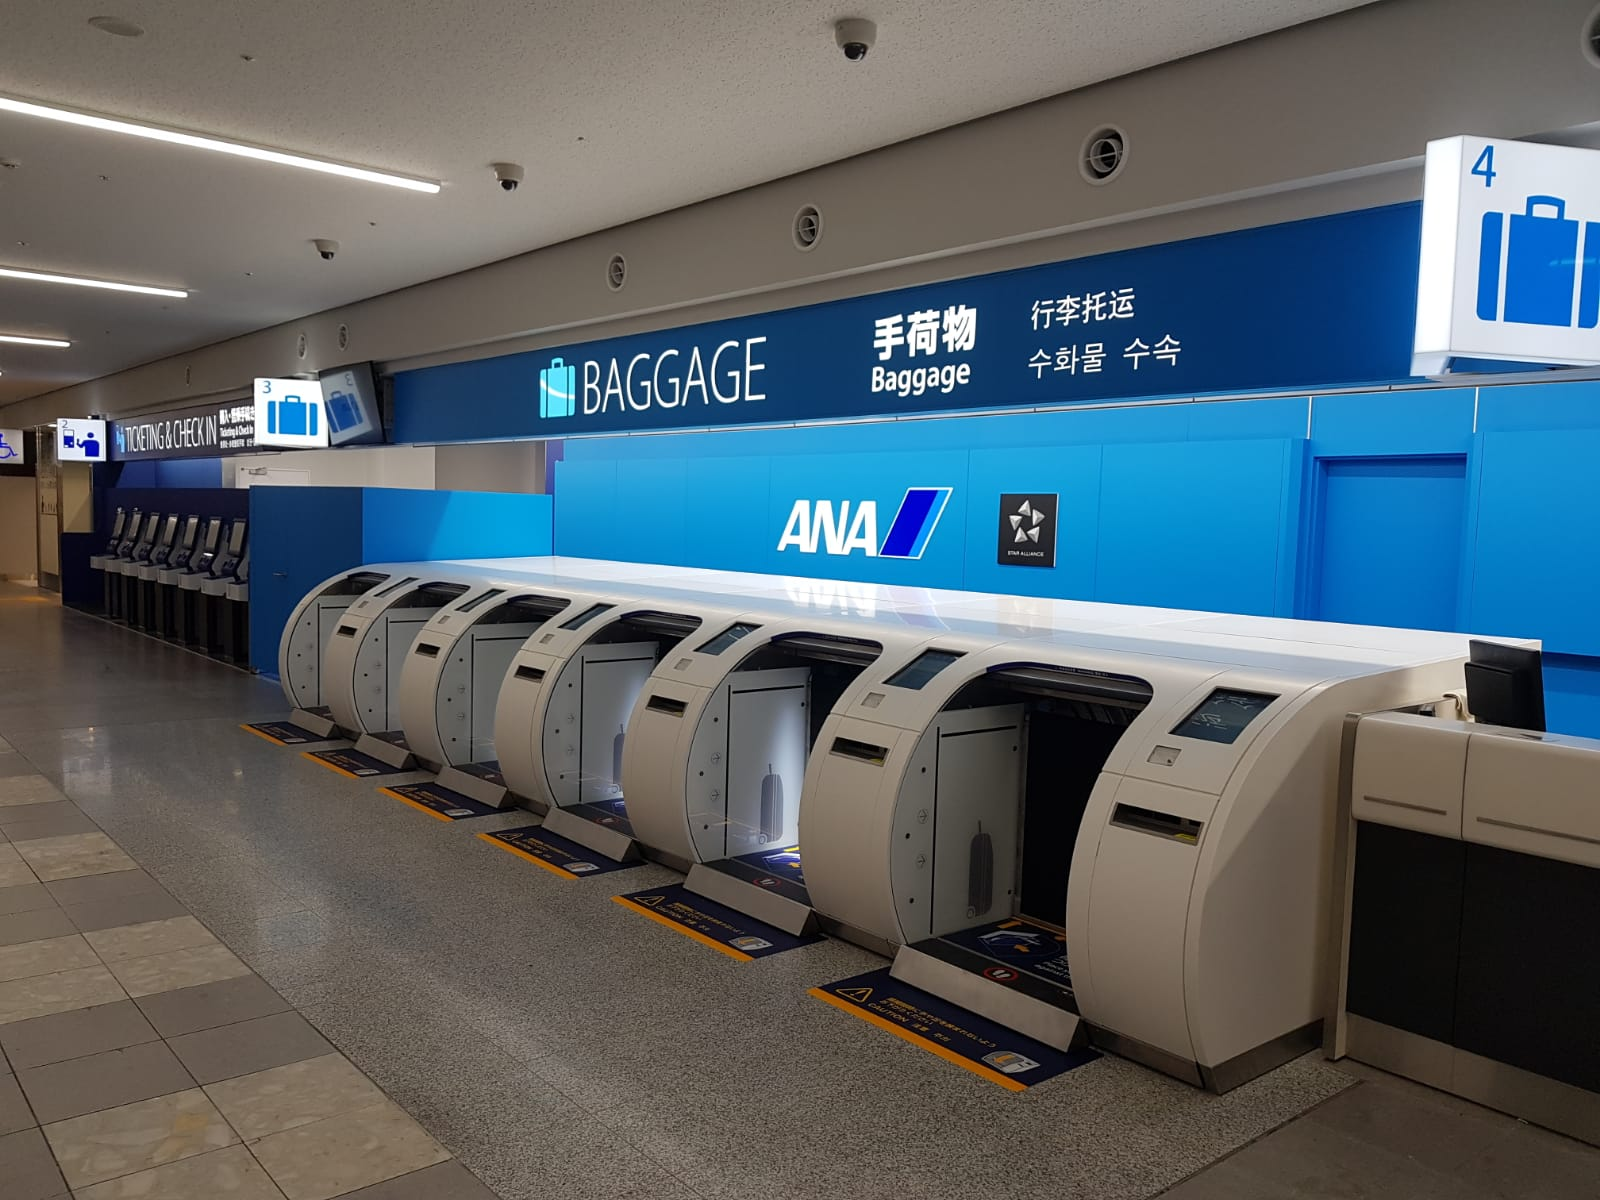 FukuokaAirport implements SelfServiceBagDrop units